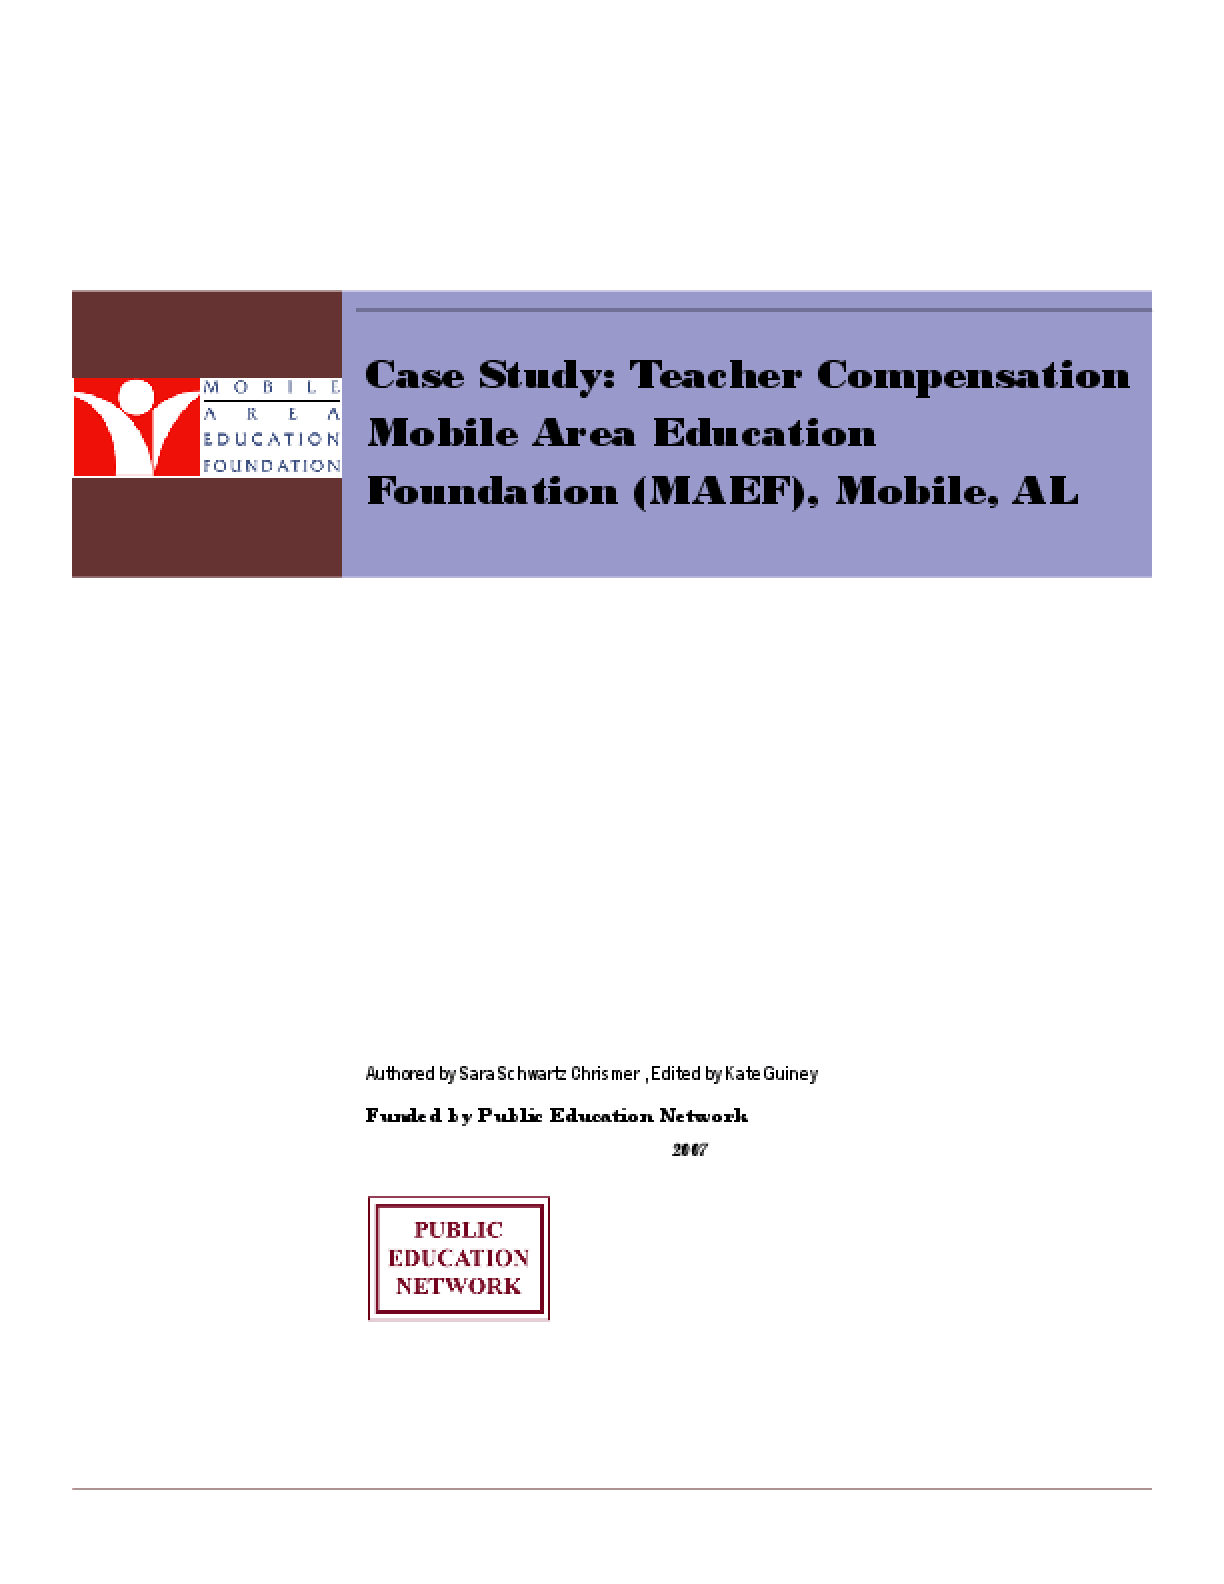 Case Study: Teacher Compensation Mobile Area Education Foundation (MAEF)